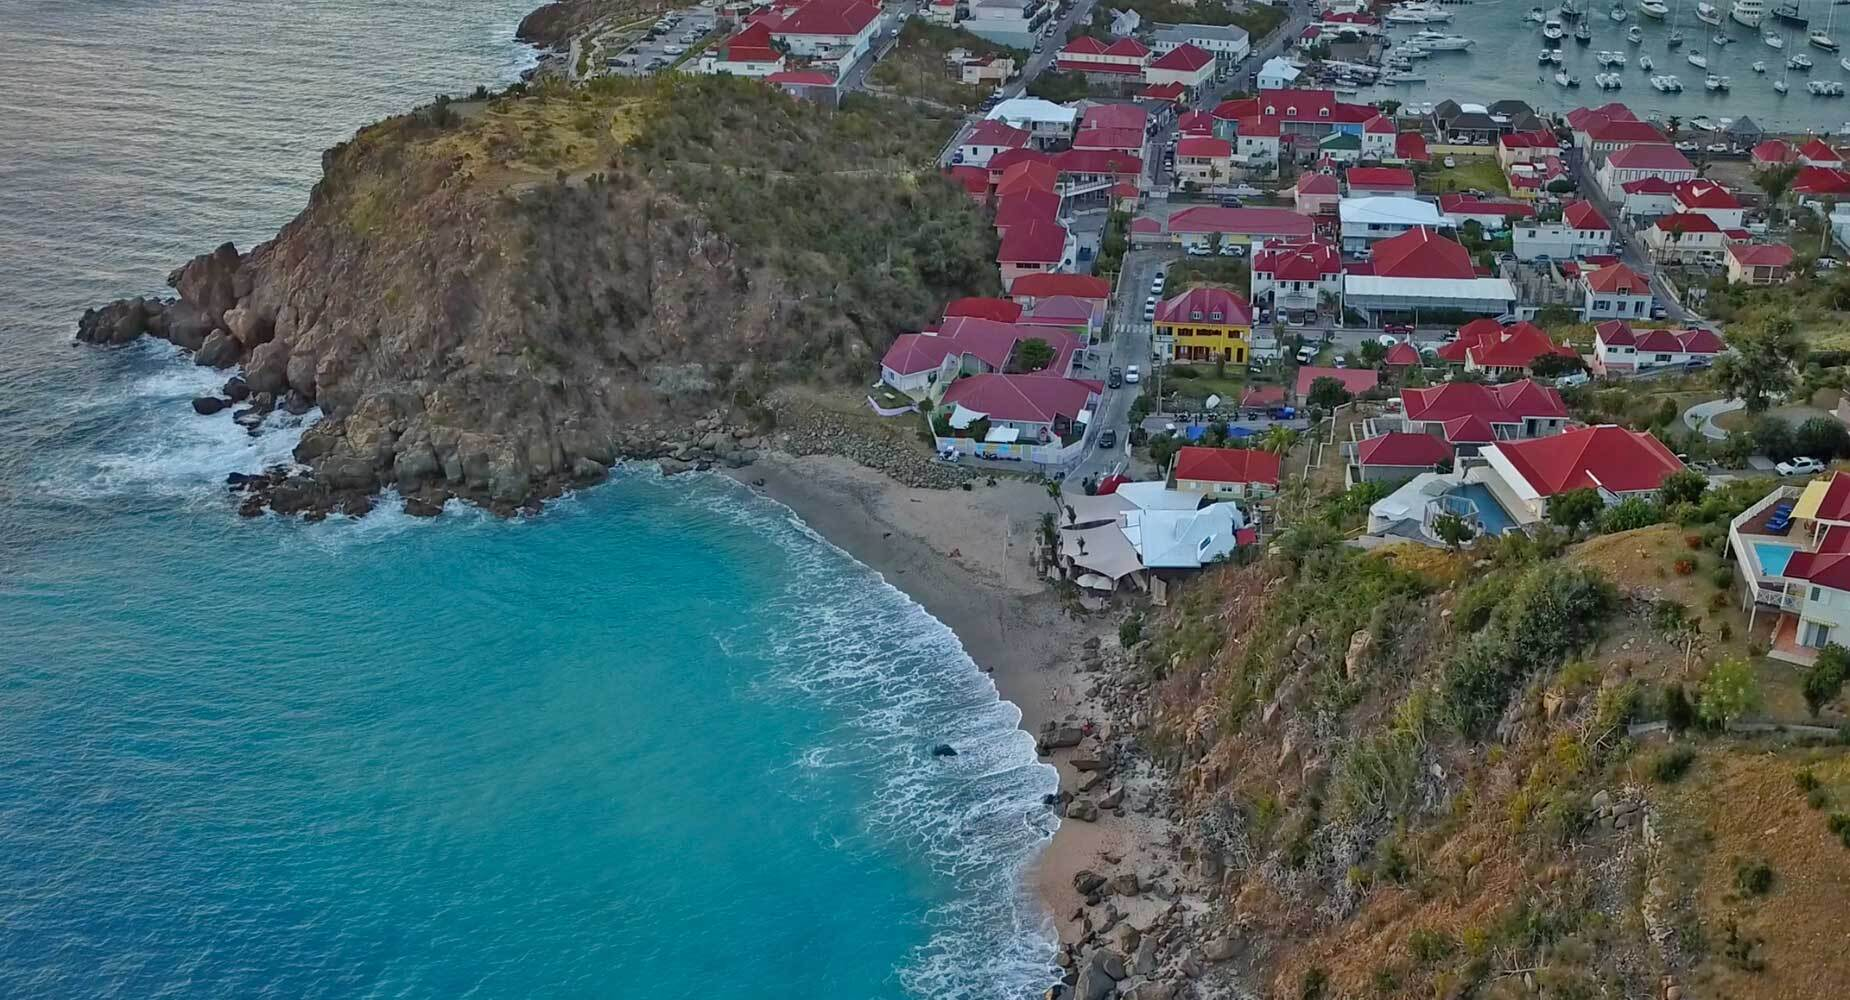 Defy St. Barths aerial photo.